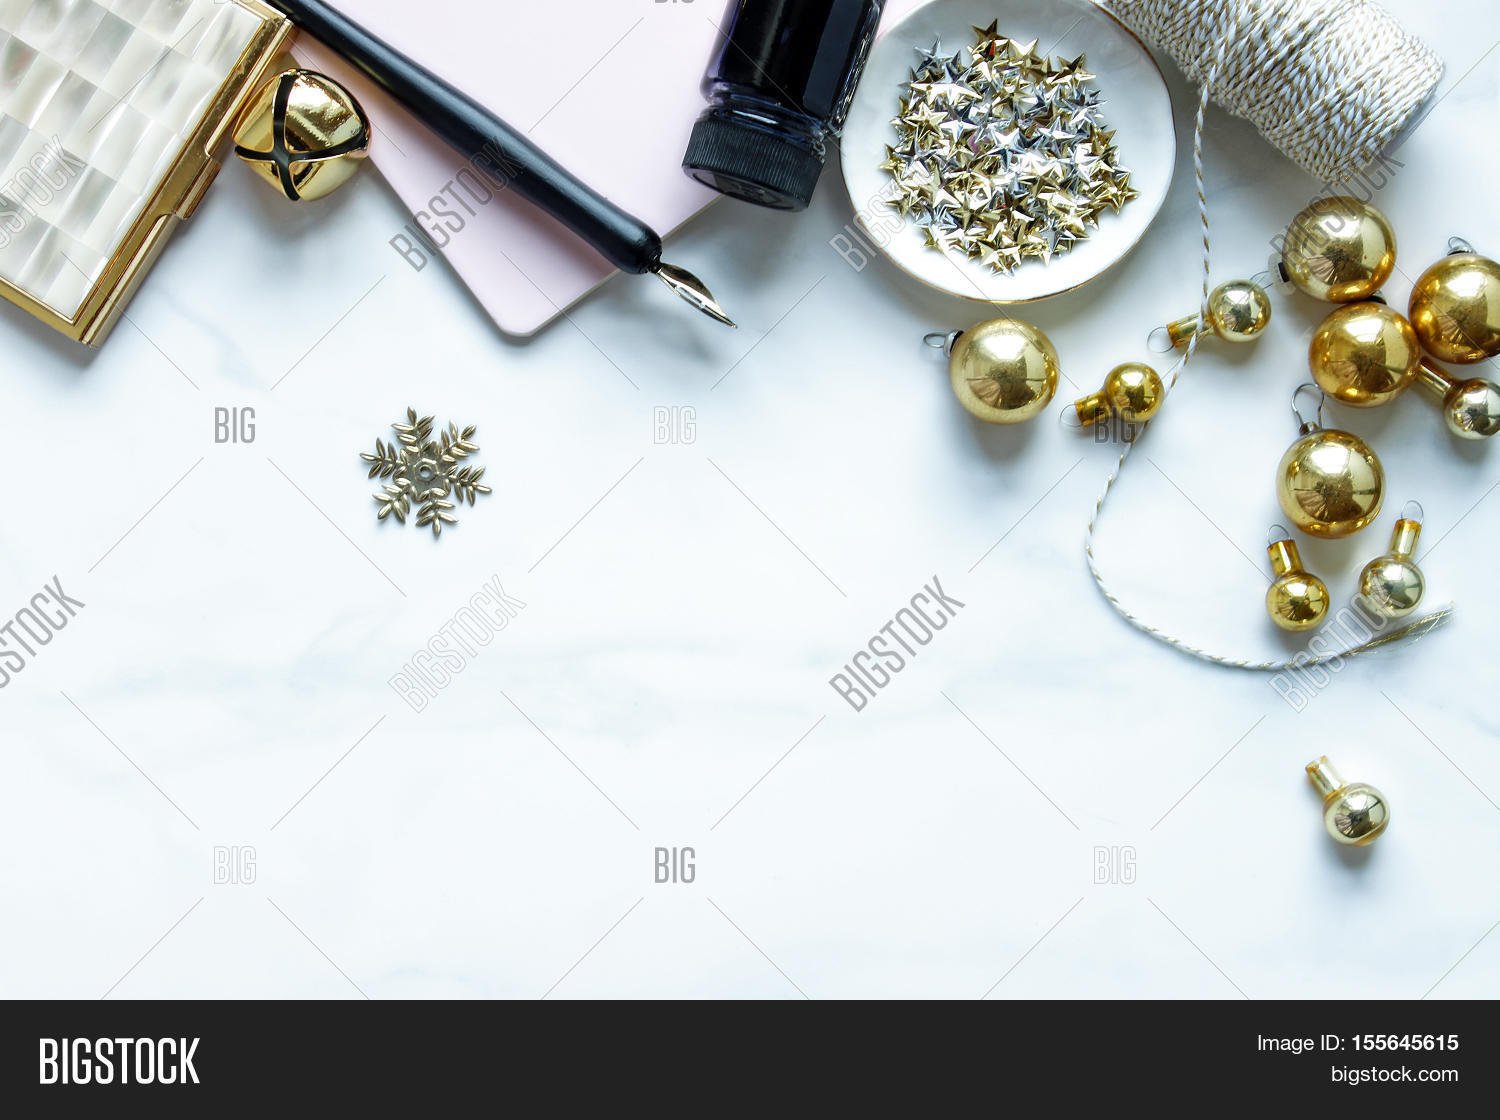 Over Head Flat Lay Image Photo Free